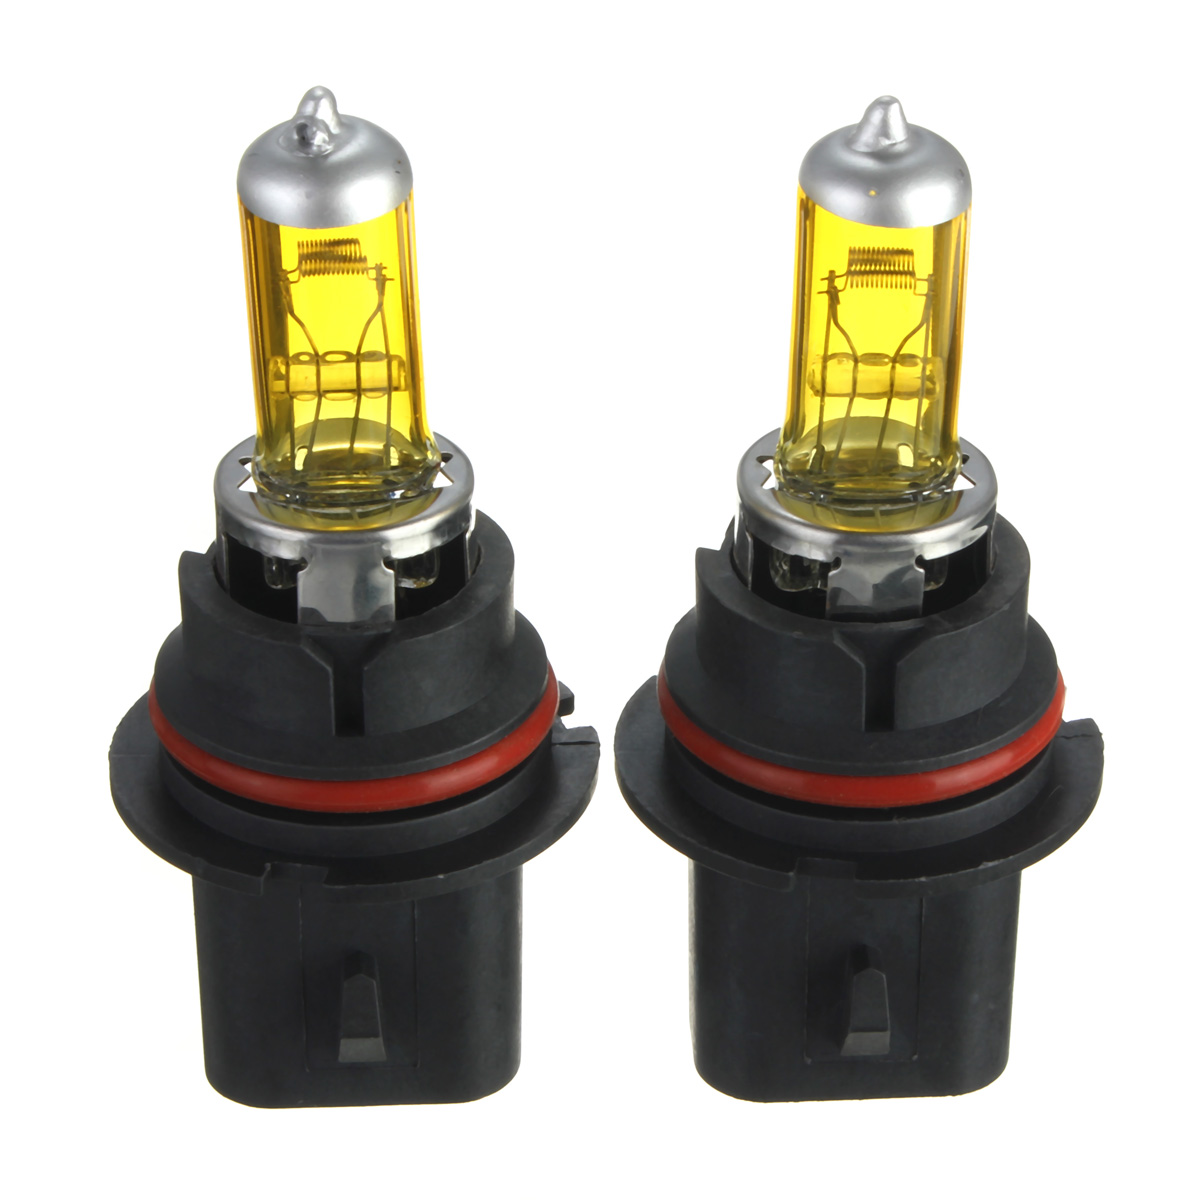 A Pair Of 9004 Hid Xenon Light Bulbs Lamps Dc12v Yellow 3000k 3500k Alex Nld